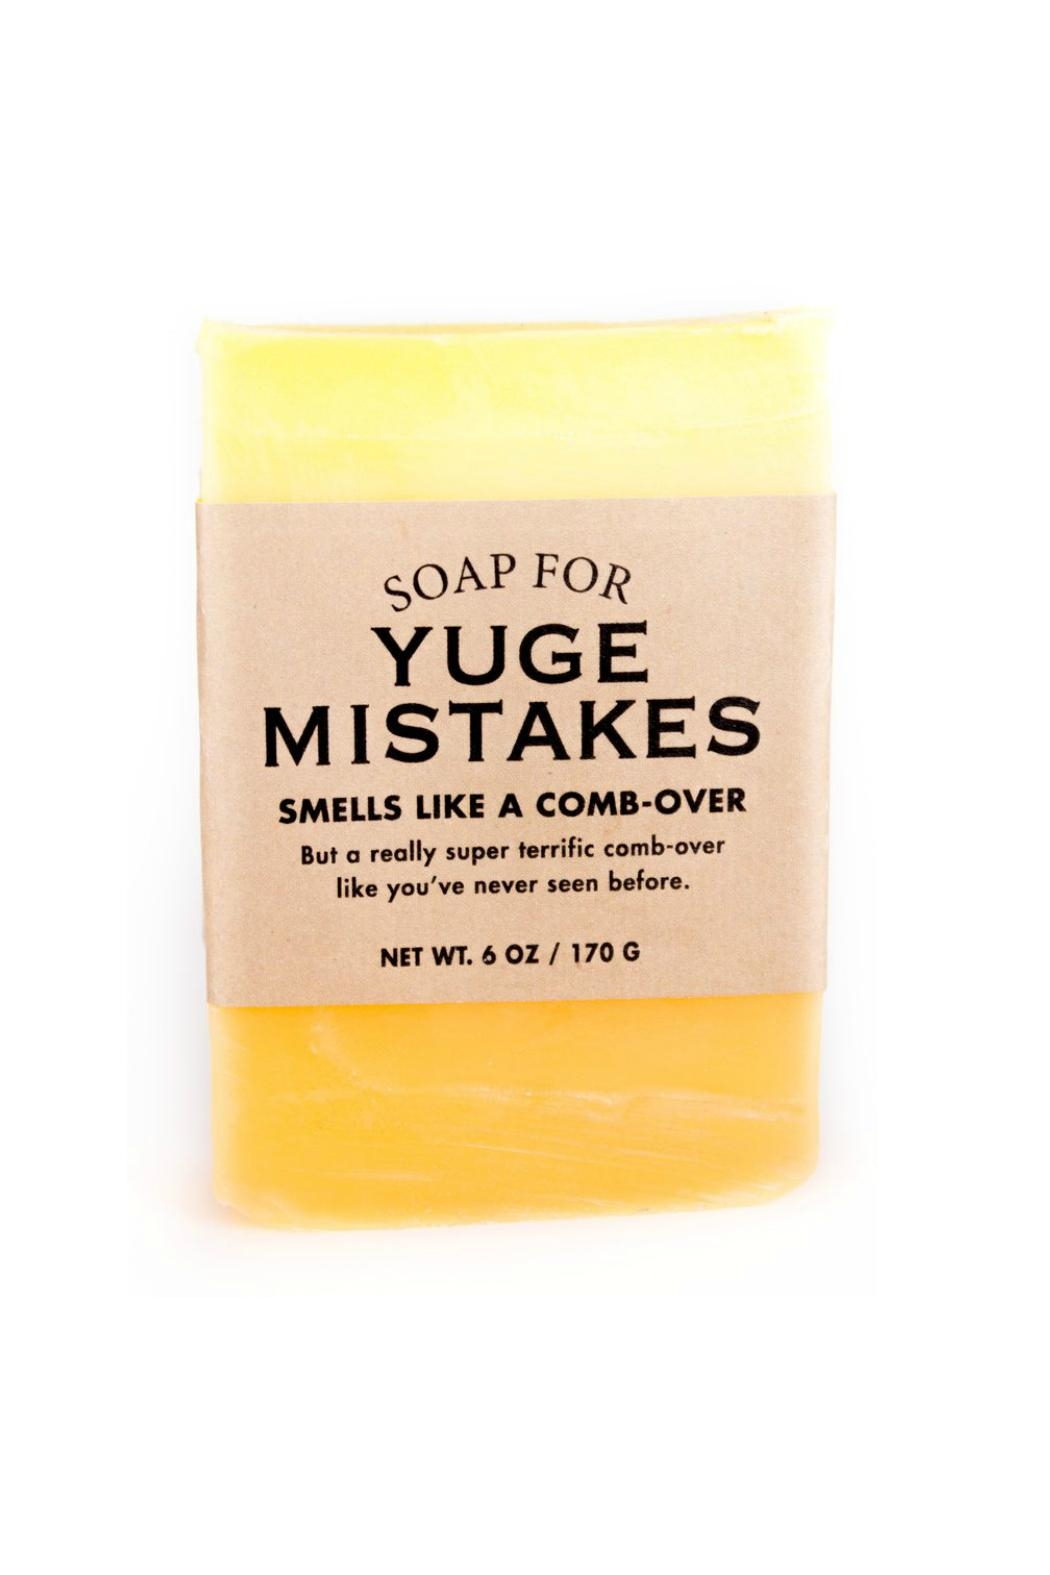 WHISKEY RIVER SOAP CO. Yuge Mistakes Soap - Main Image